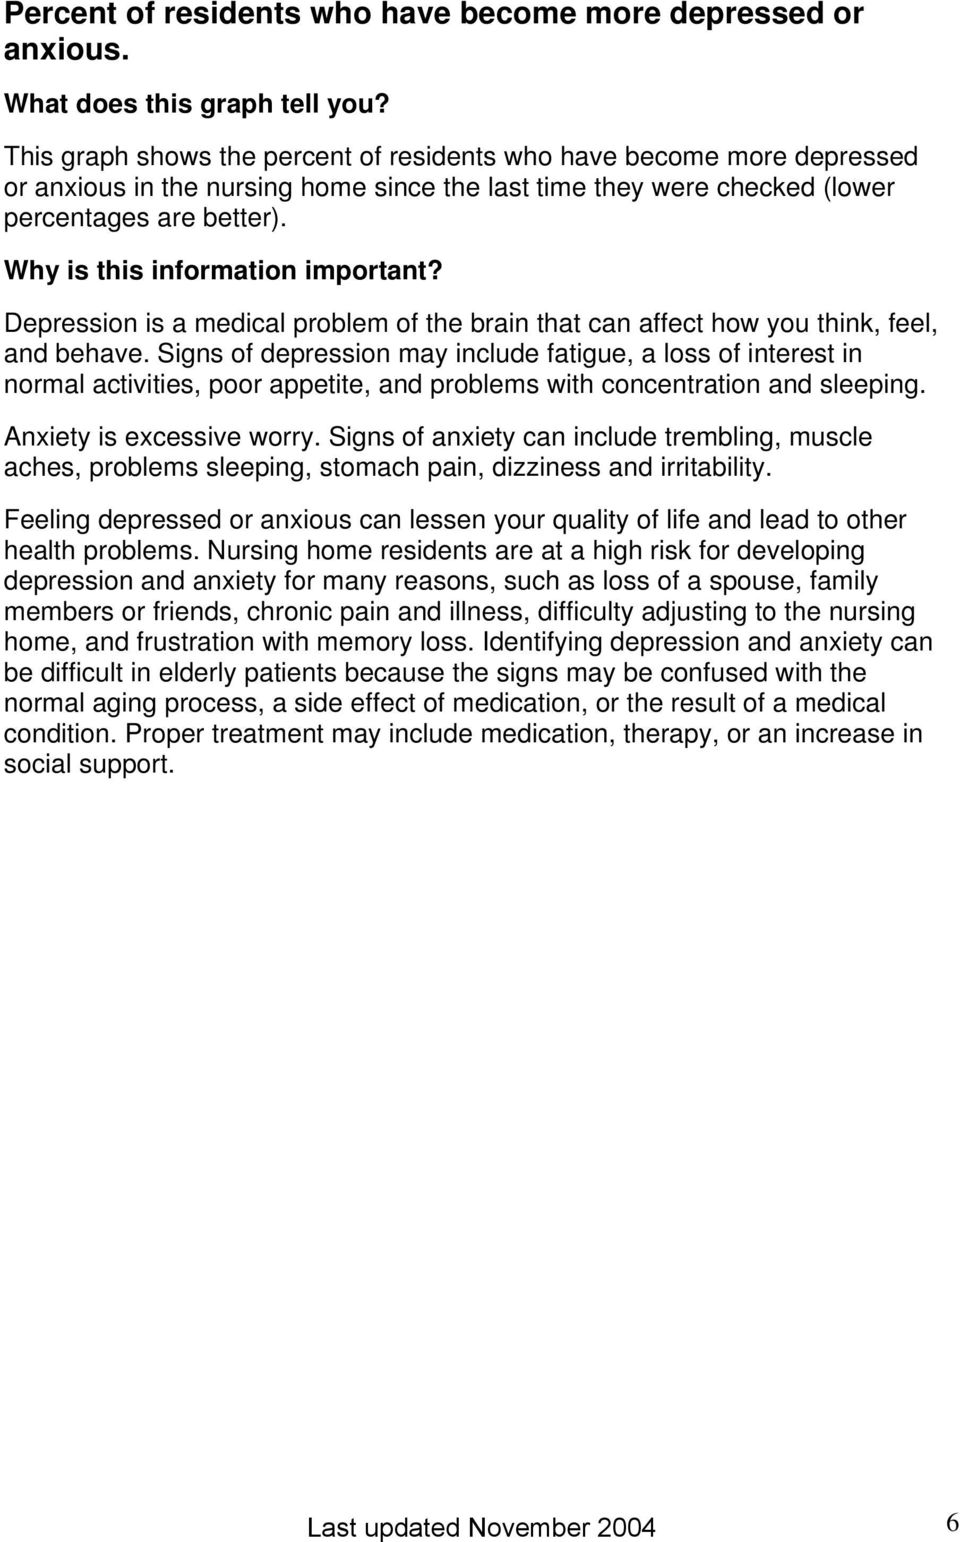 Depression is a medical problem of the brain that can affect how you think, feel, and behave.